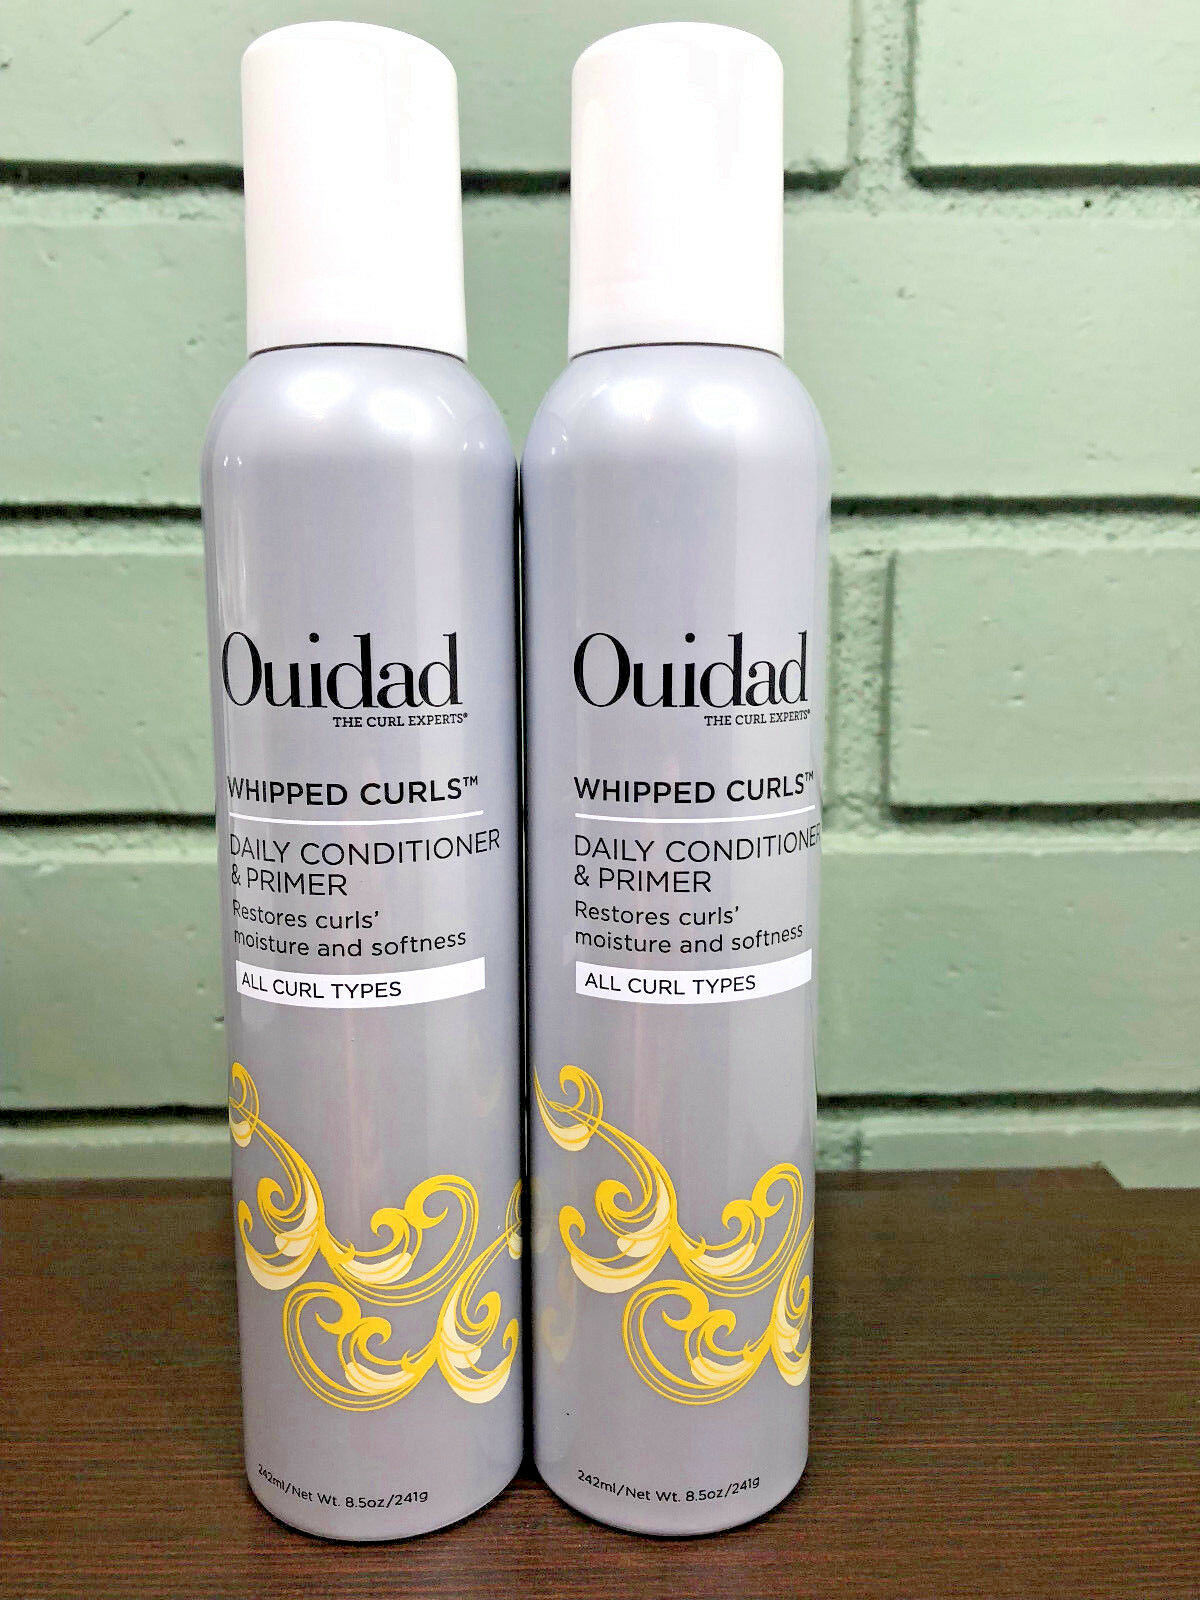 Ouidad Curl Recovery Whipped Curls Daily Conditioner & Primer 8.5oz (2 PACK)